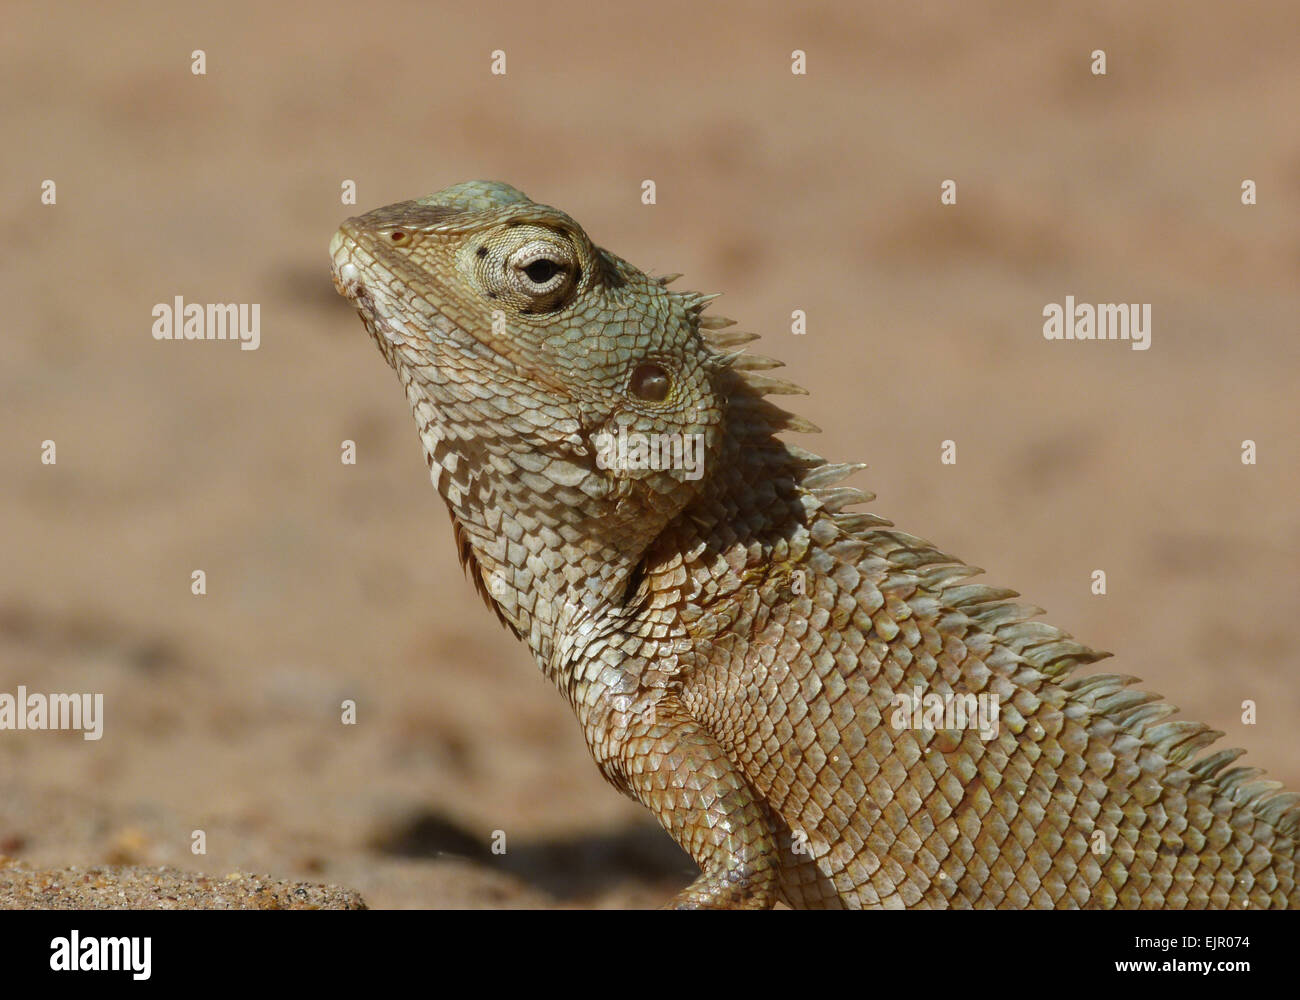 Oriental Garden Lizard (Calotes versicolor) adult, close-up of head ...